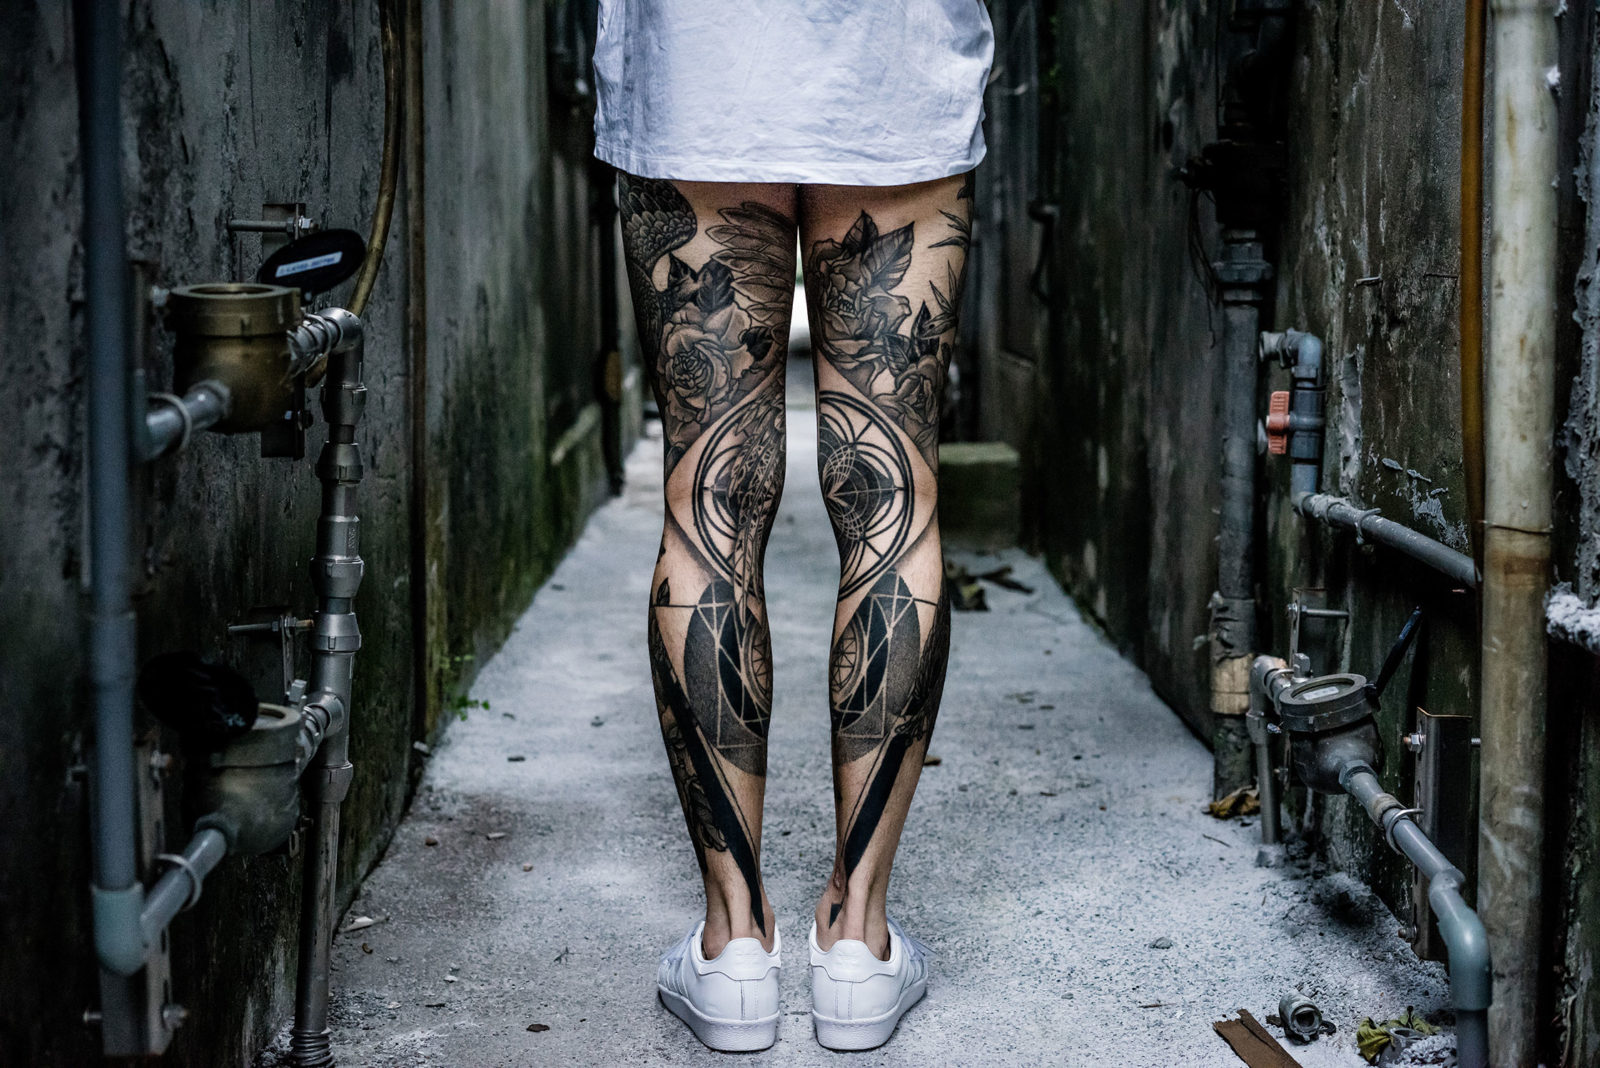 Maxime's unique tattoo style combines his many interests and influences across history, philosophy, art and science